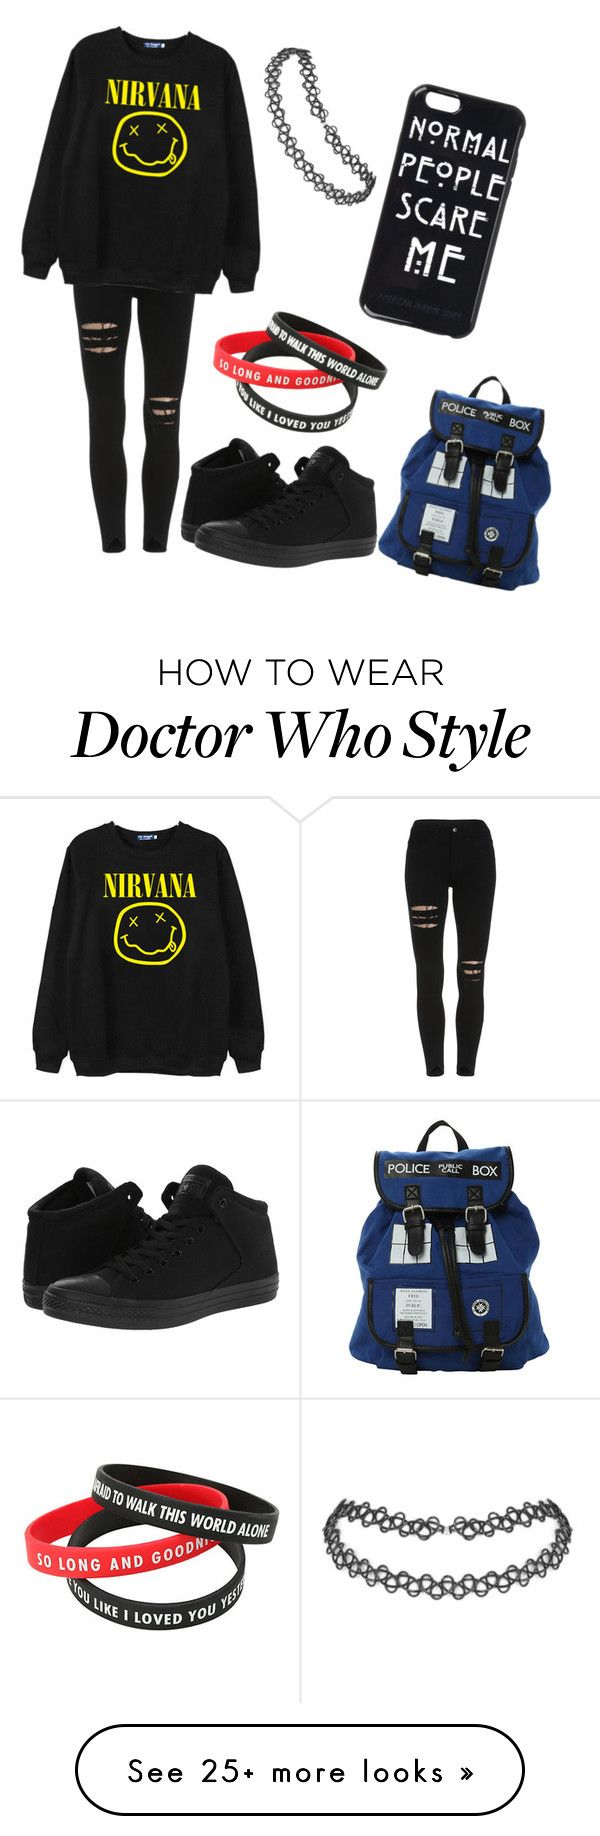 """Outfit"" by bandsareswag on Polyvore featuring Chicnova Fashion and Converse"